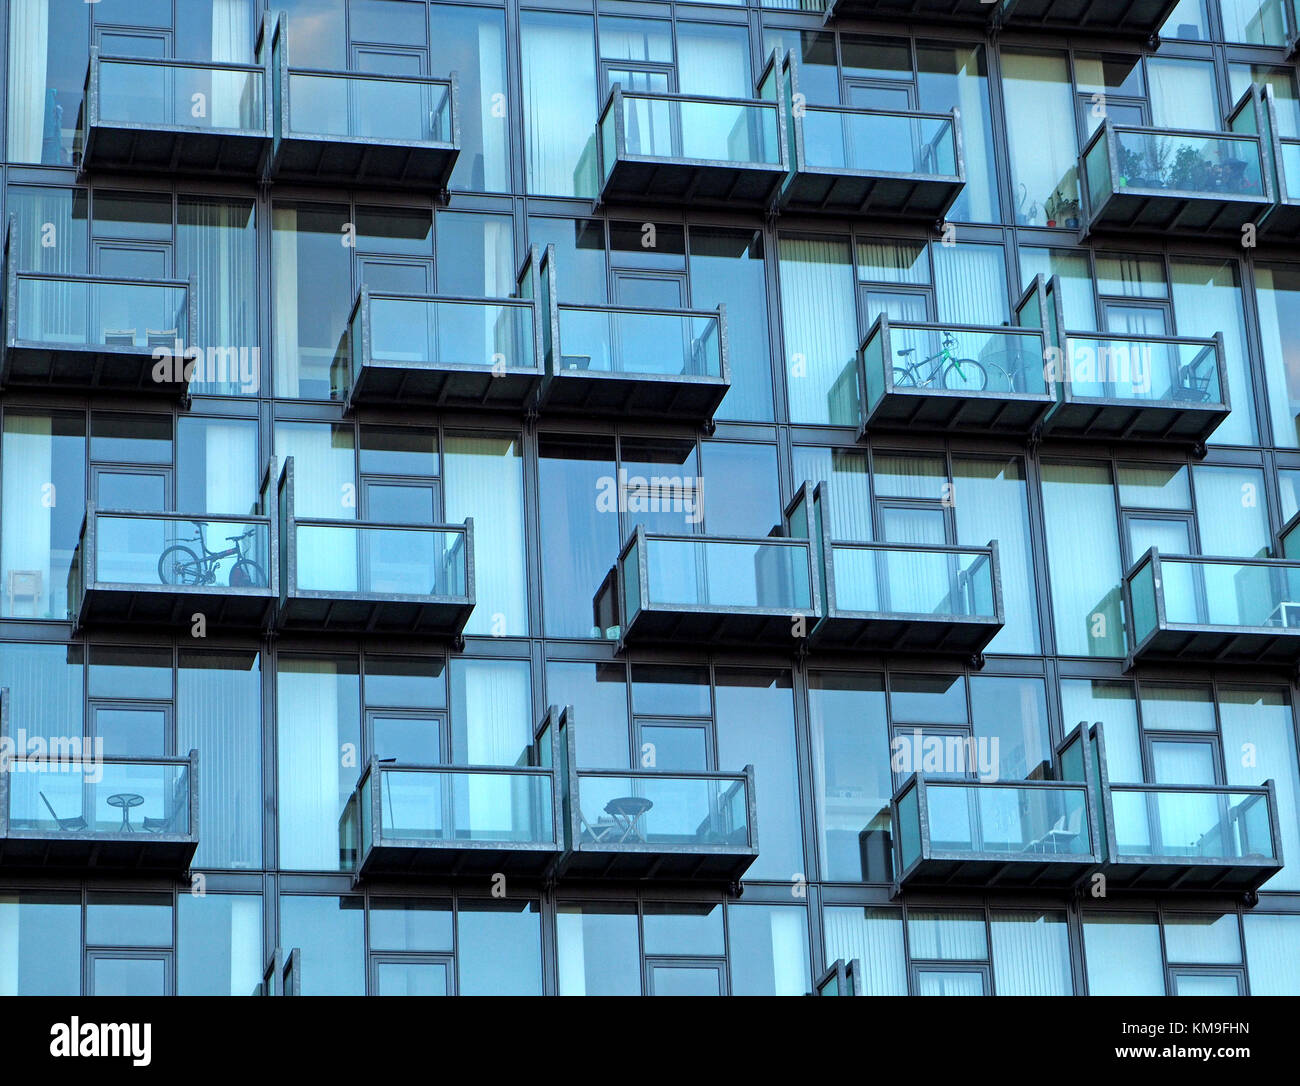 pattern created by grid of balconies with seating and bicycles on blue glazed frontage of new building at Salford - Stock Image